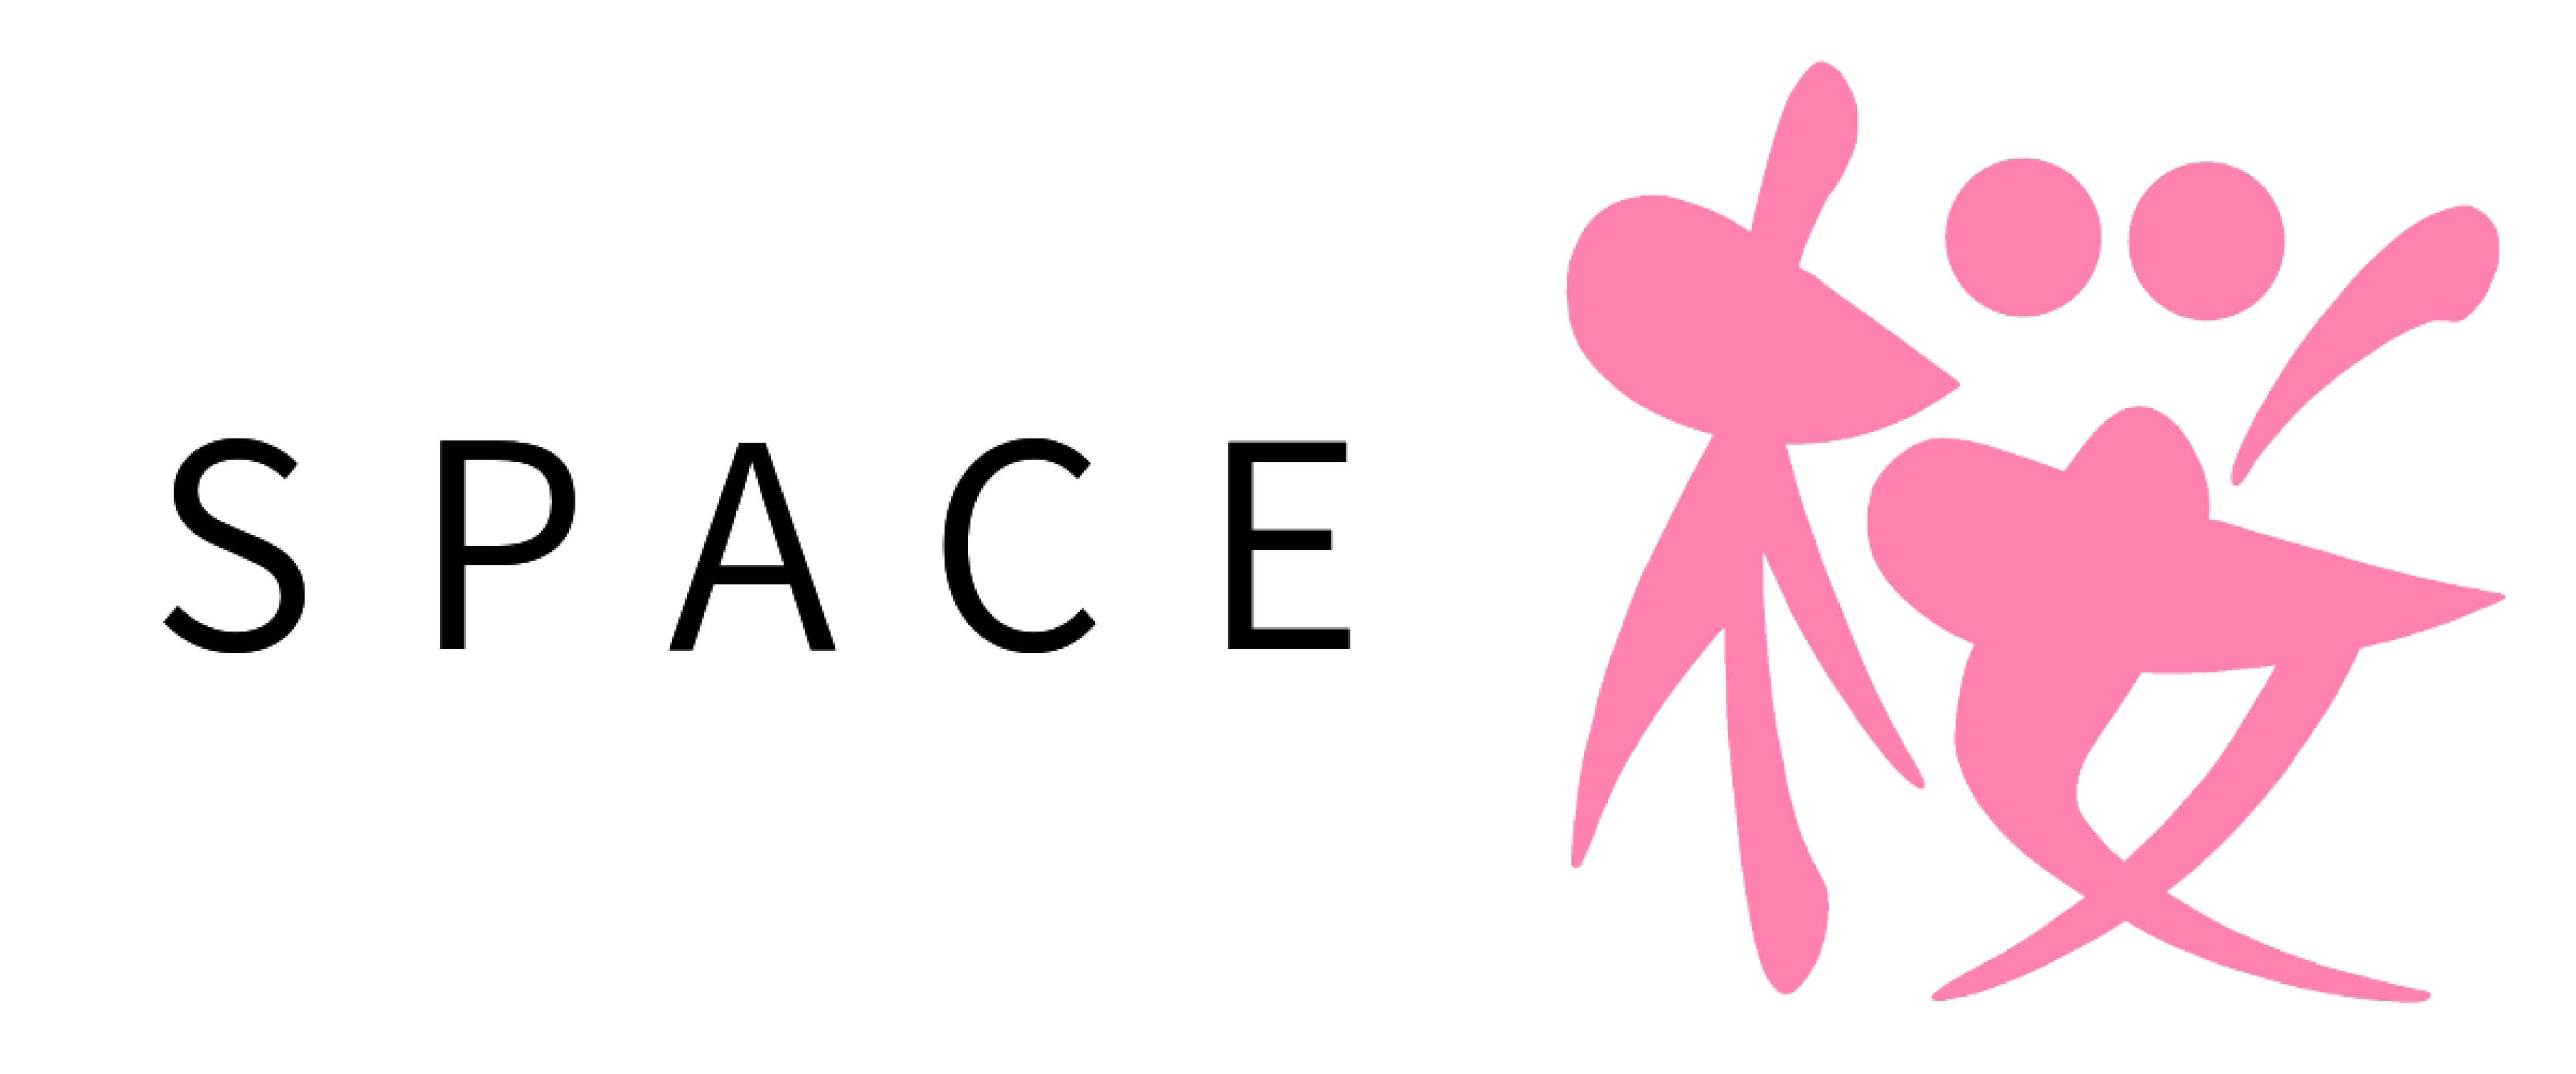 SPACE 桜